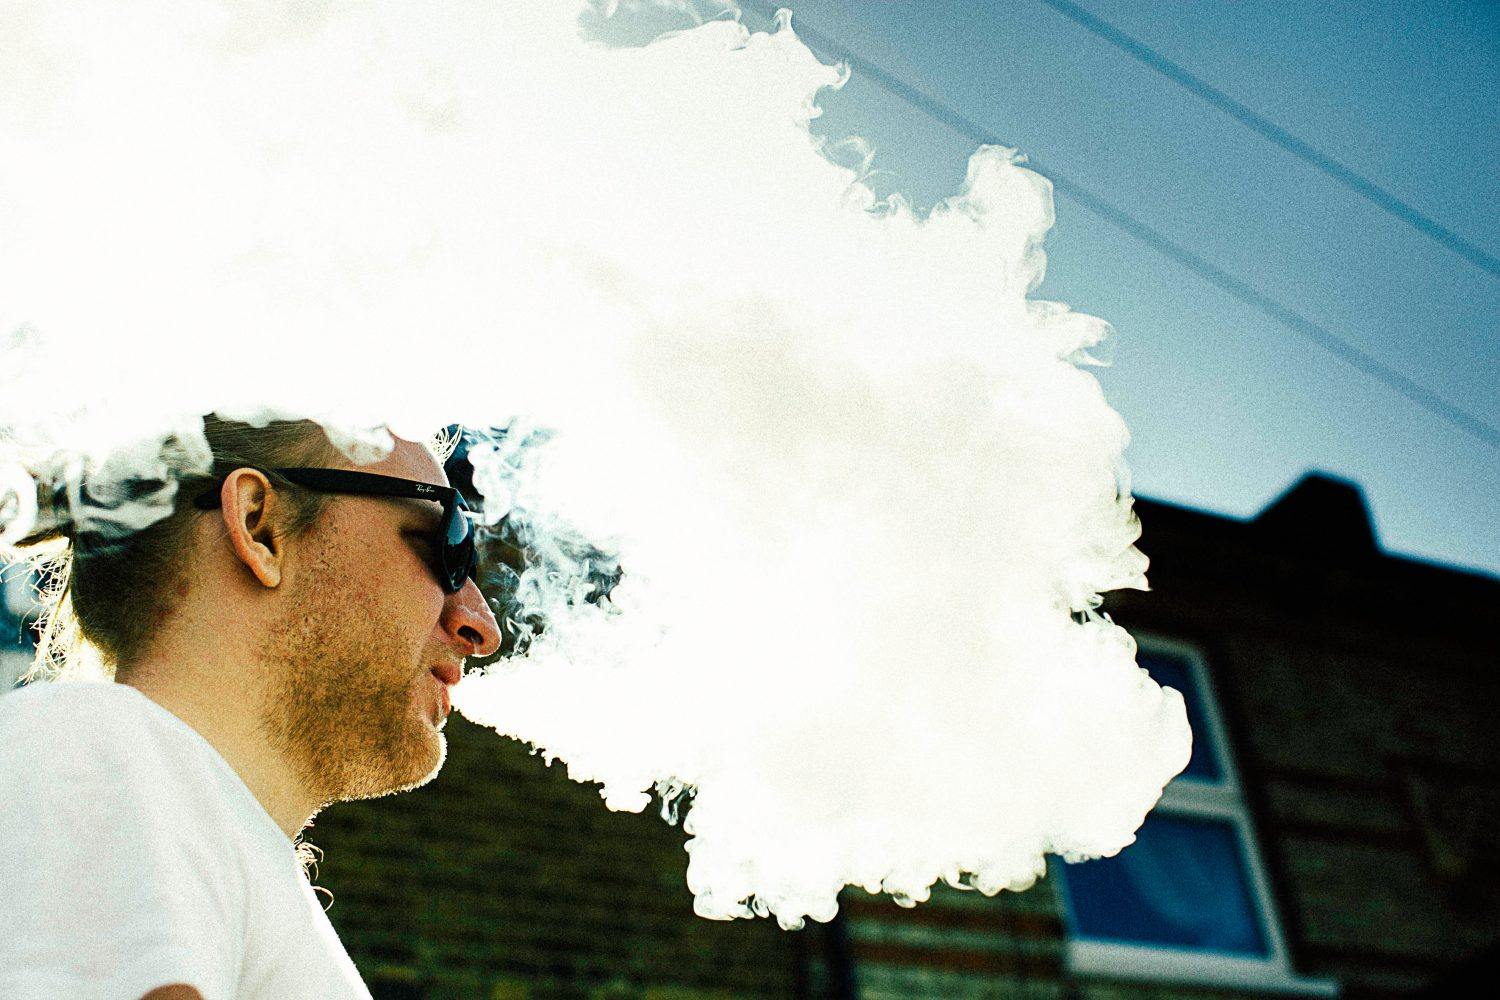 Dangers of vaping | Can you sue for vaping injuries